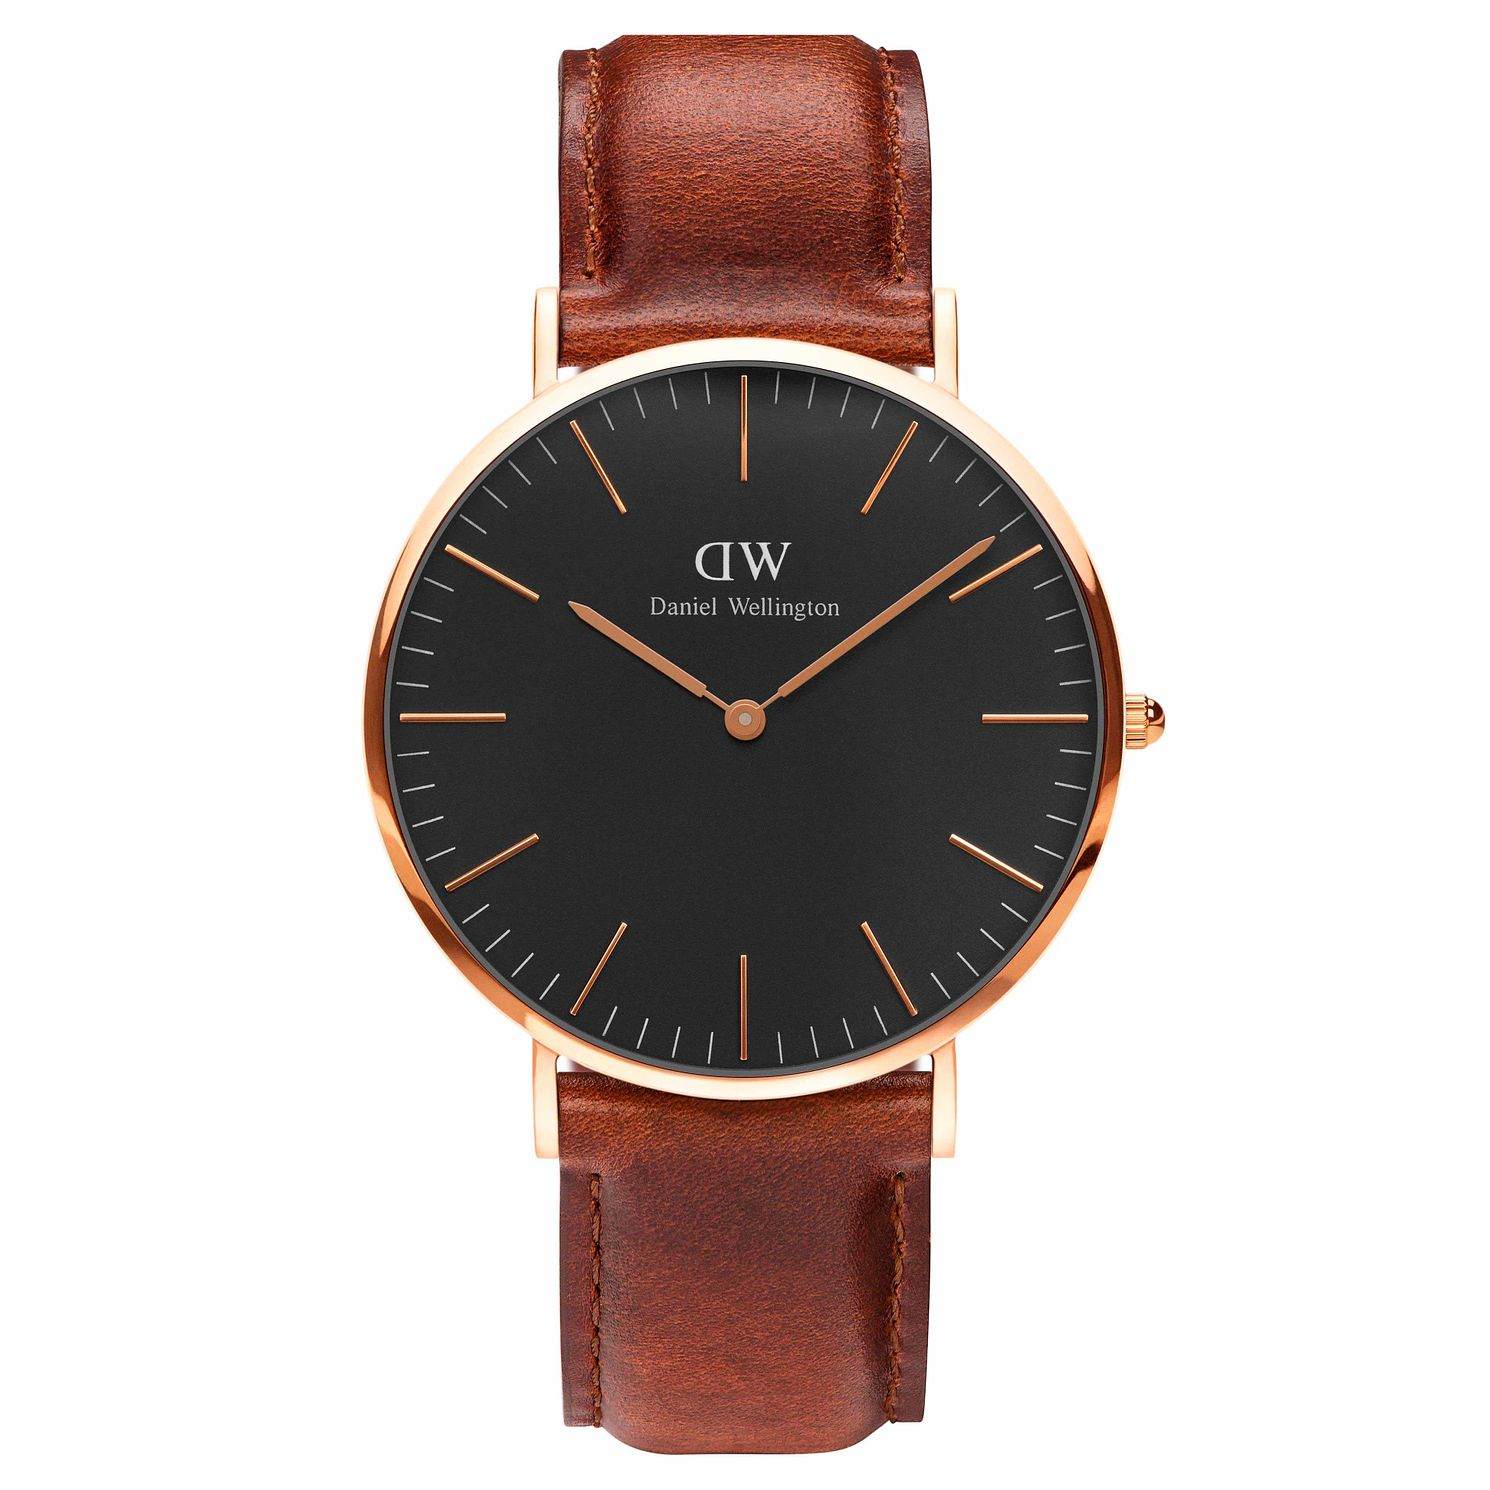 Daniel Wellington Men's St Mawes Black Dial Watch - Product number 1177230